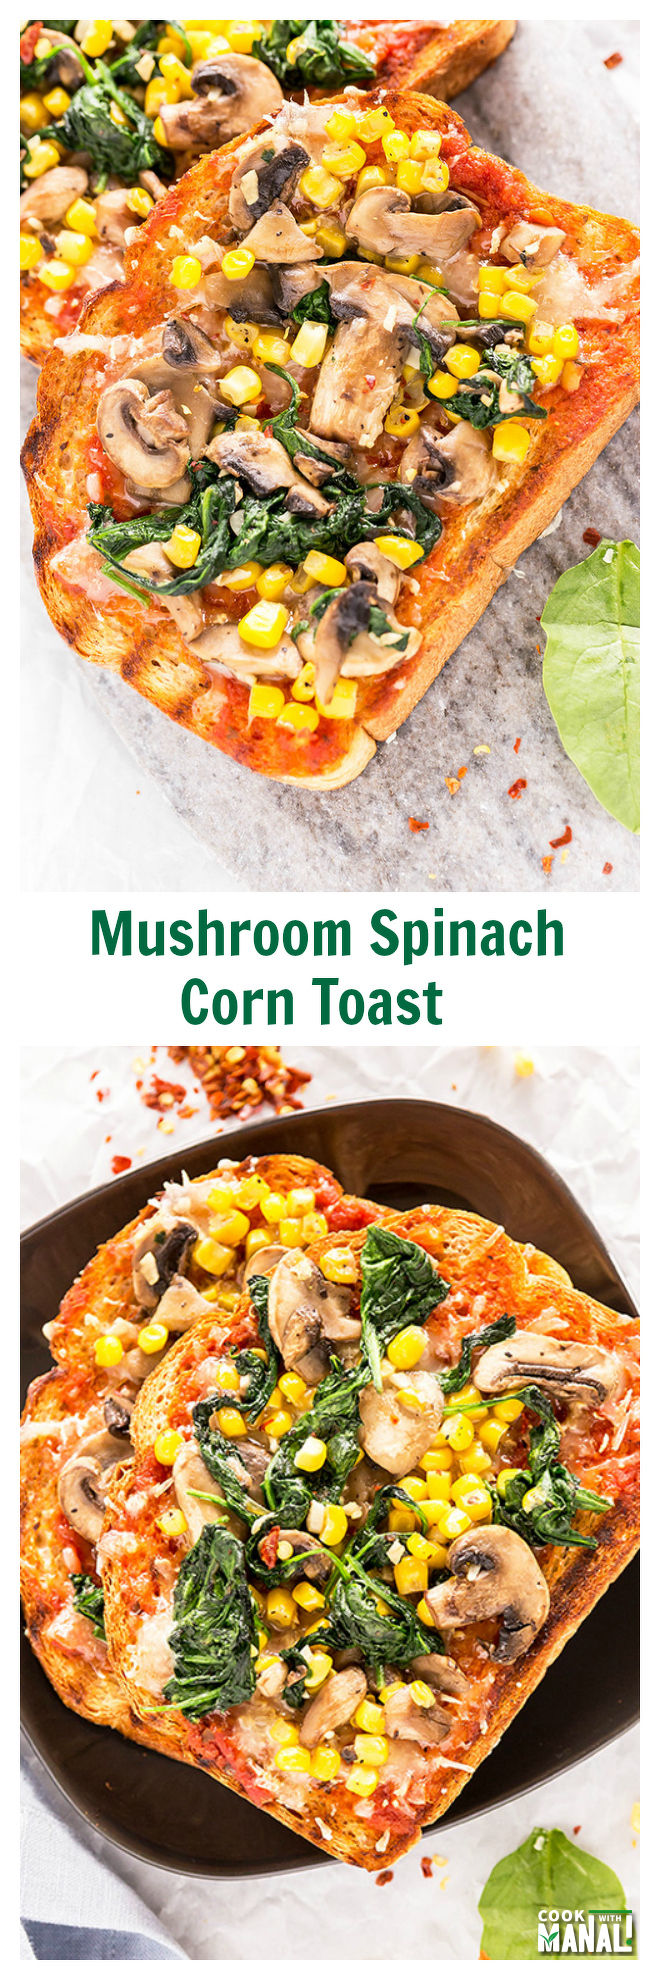 Mushroom Spinach Corn Toast-Collage